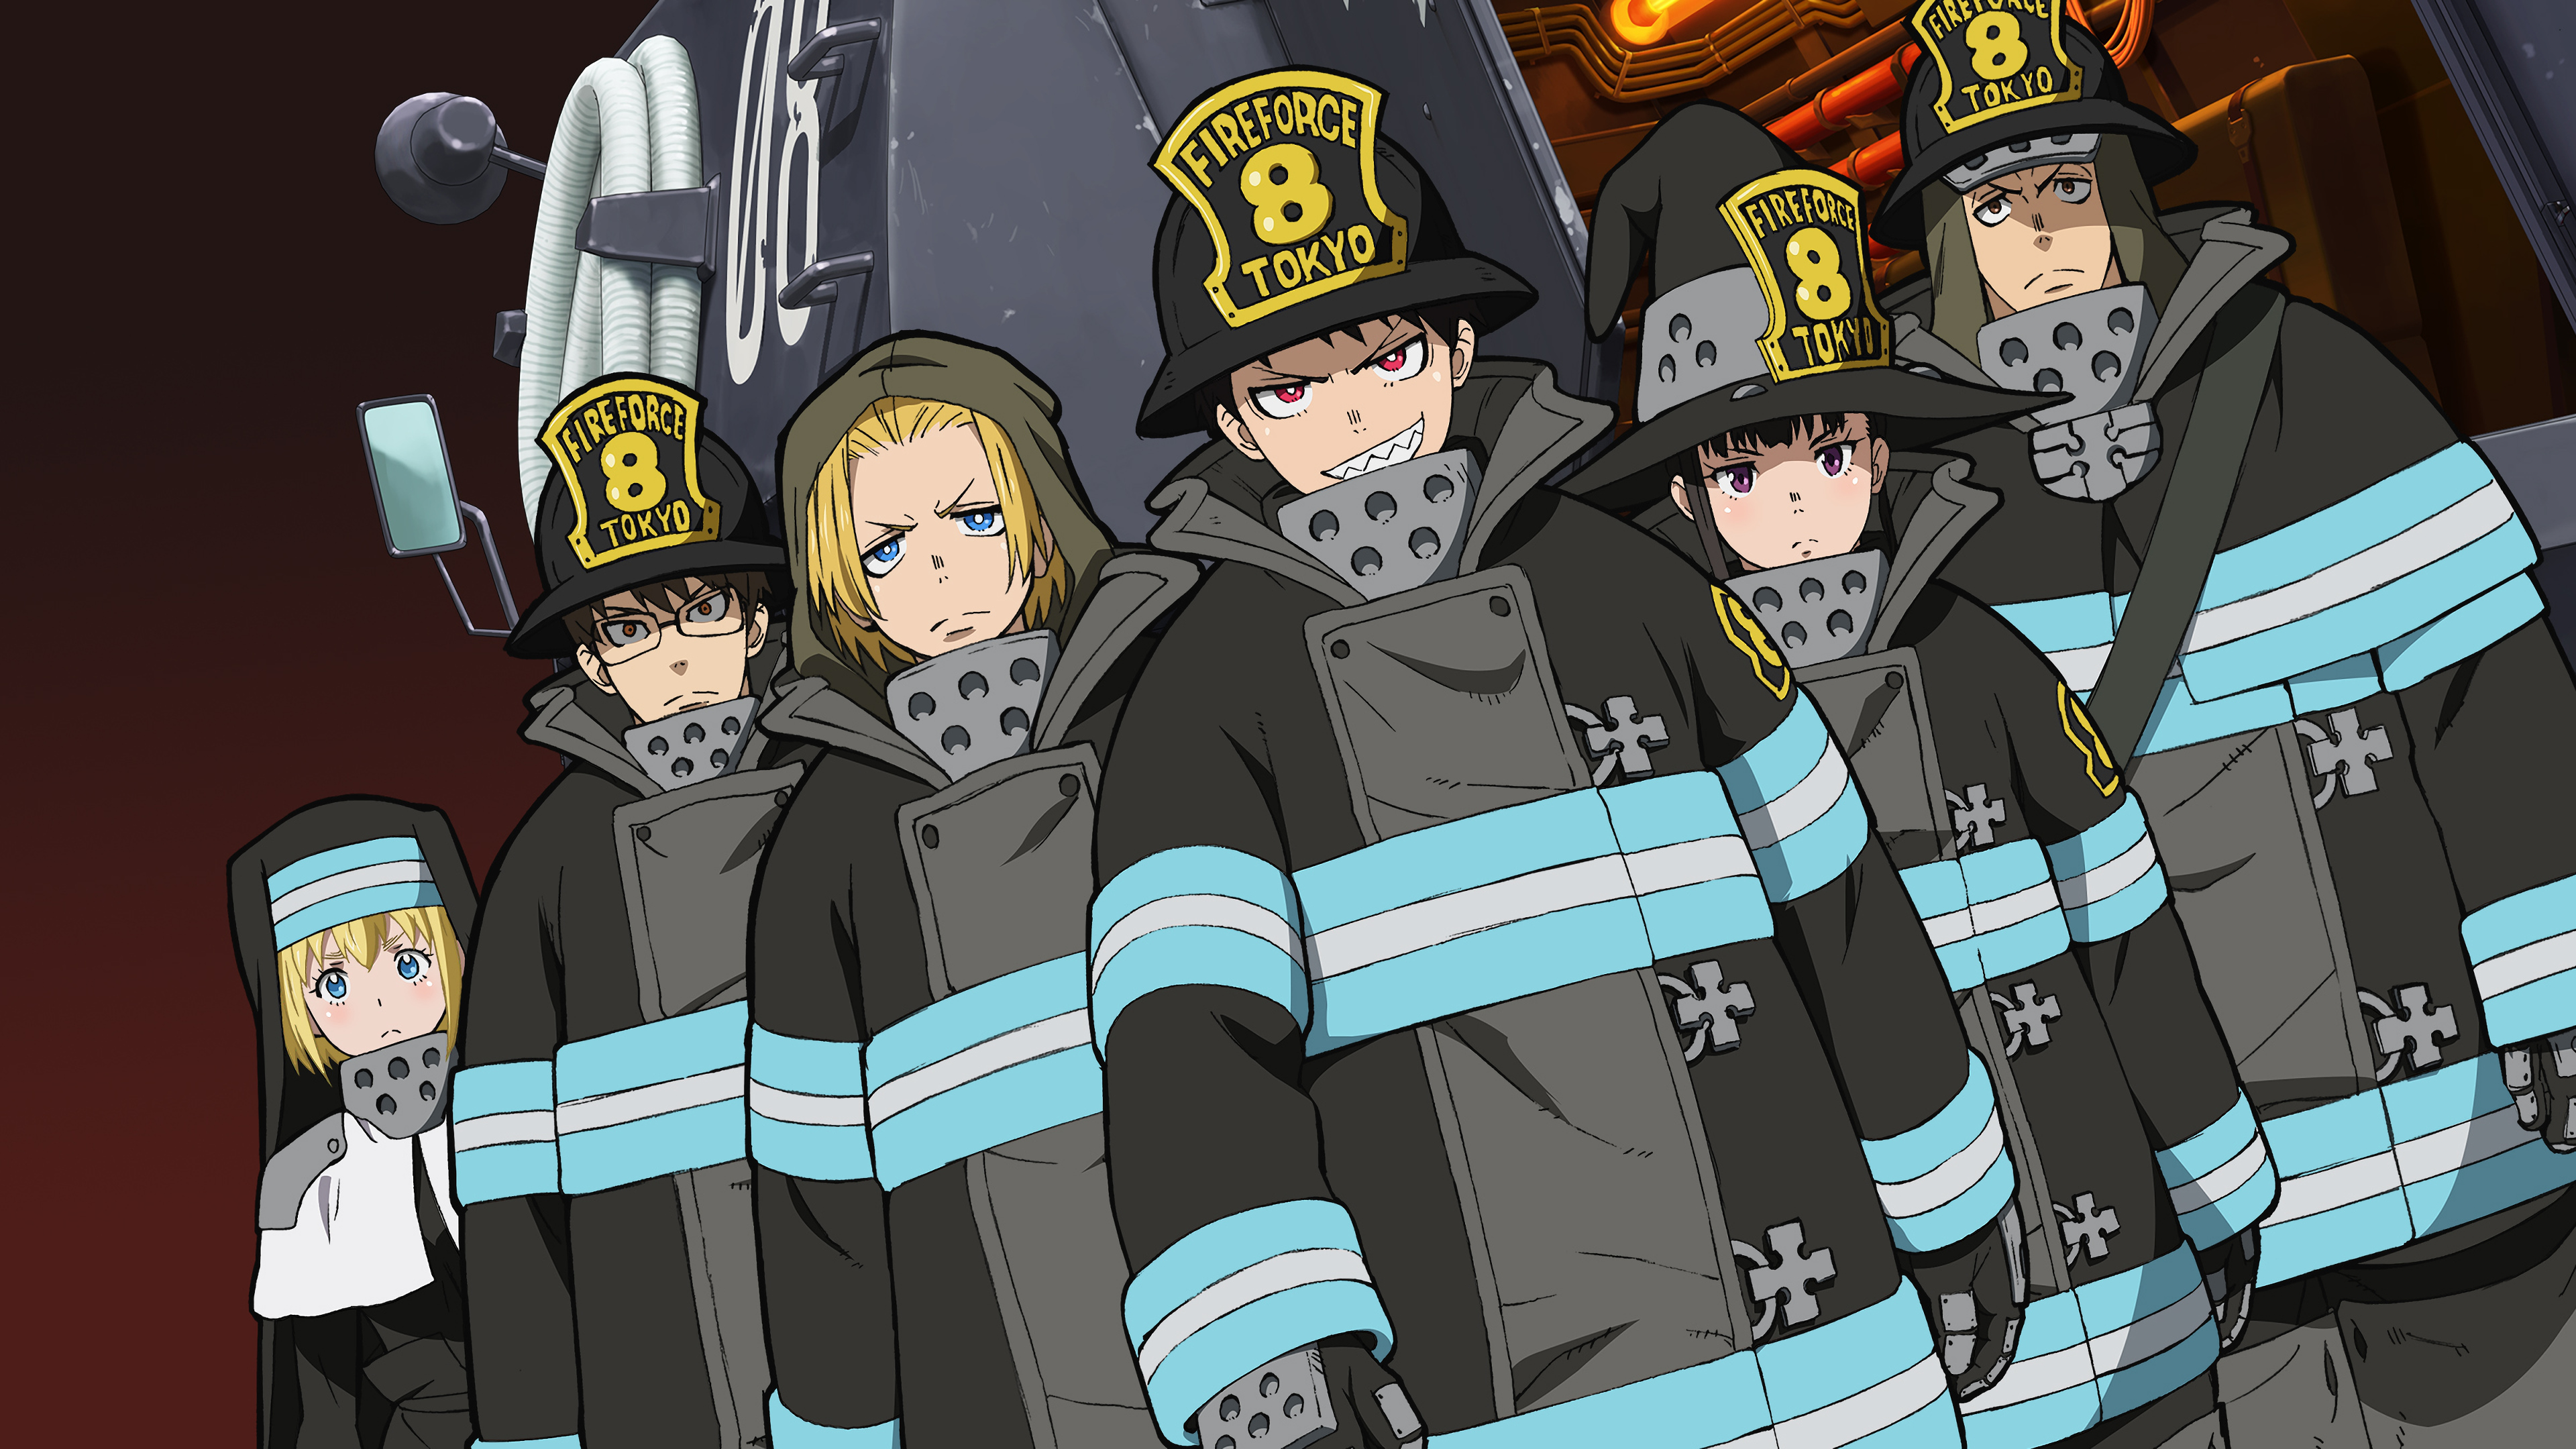 Fire Force Desktop Wallpapers Wallpaper Cave Autumn images backgrounds (25 wallpapers). fire force desktop wallpapers